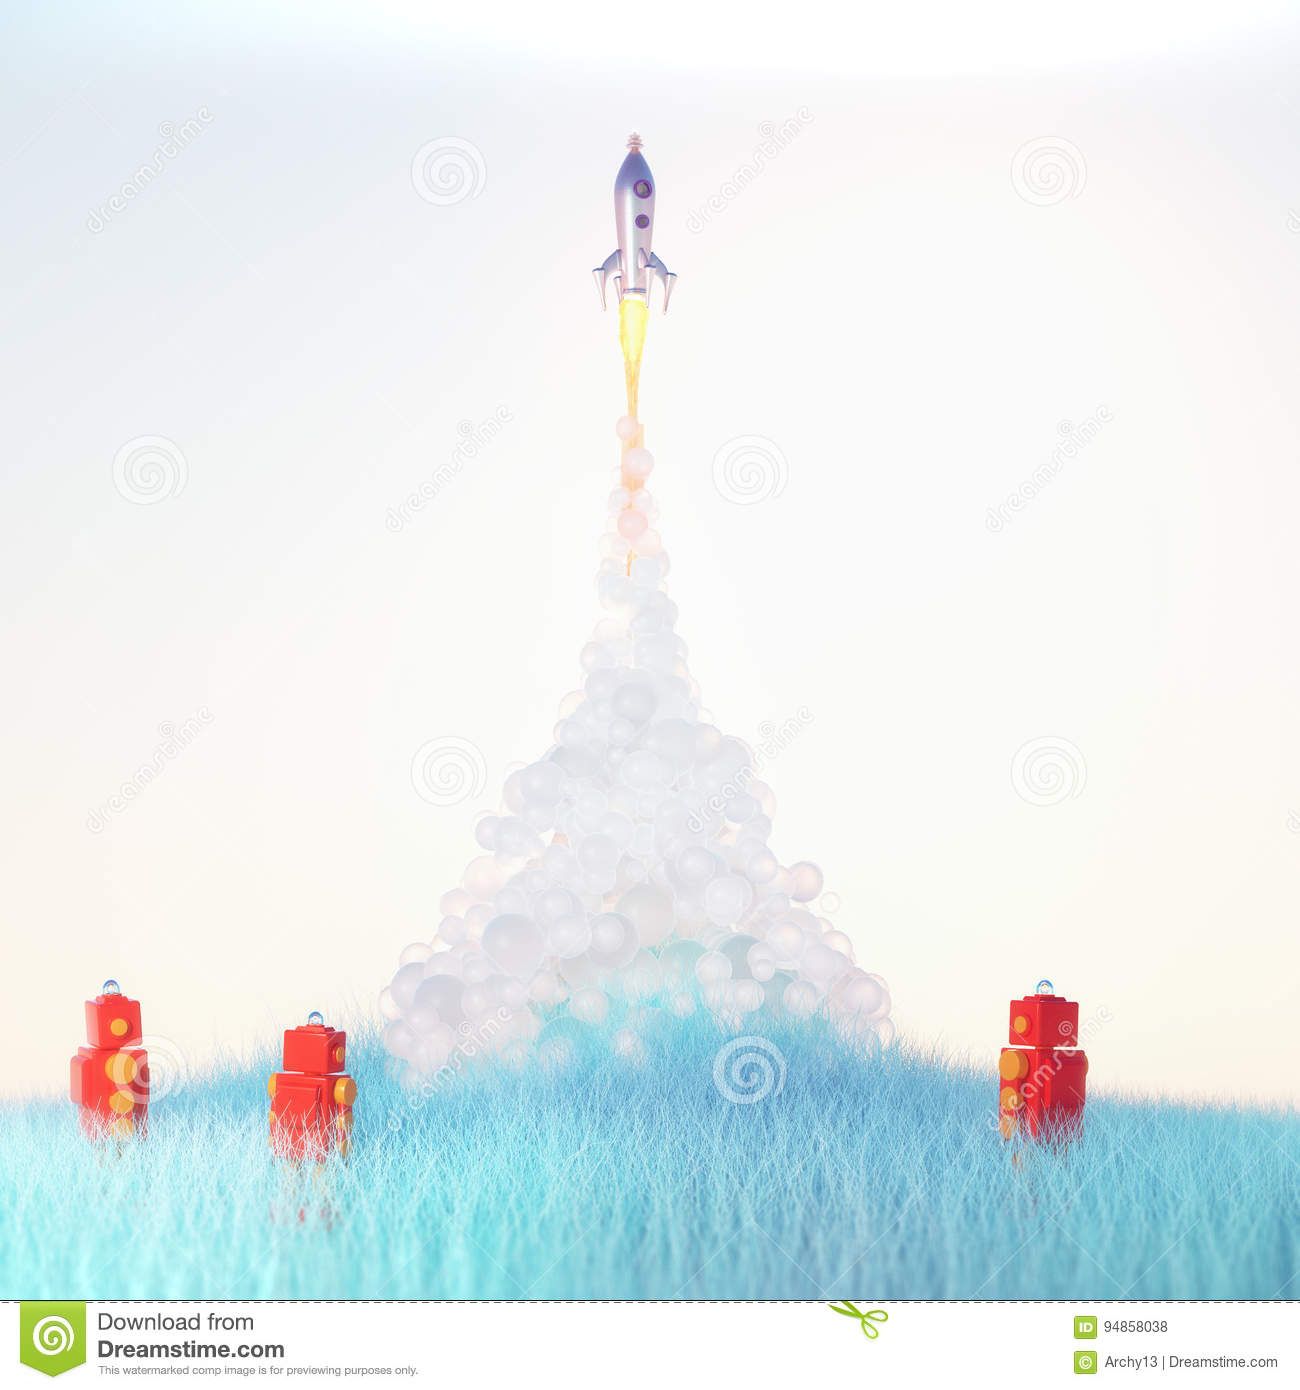 Red toy robots watch cute vintage rocket launch with soft fluffy smoke on light blue background on blue grass 3d render